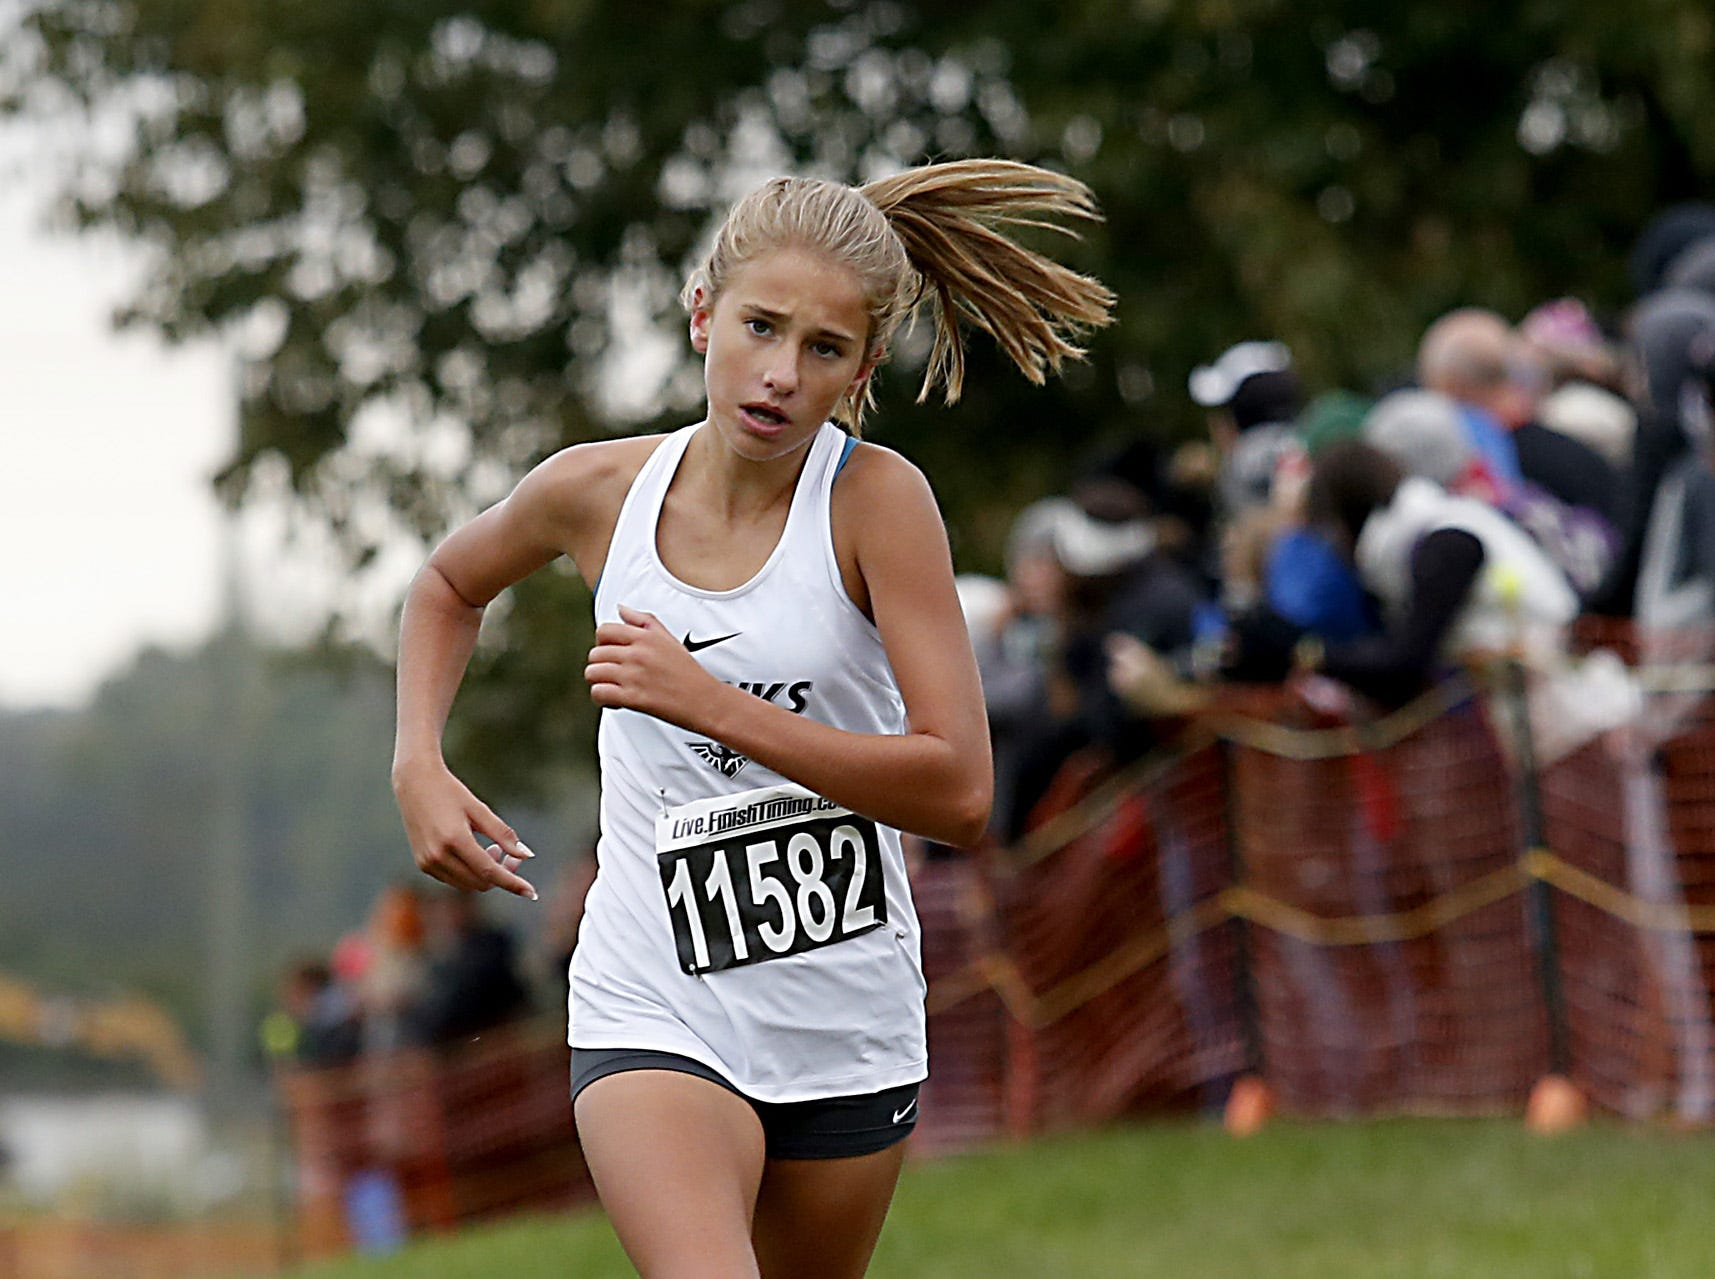 Cali Reynolds of Lakota East finishes seventh during the Greater Miami Conference Girls and Boys Cross Country Championships at Voice of America Park in West Chester Saturday, Oct. 13, 2018.